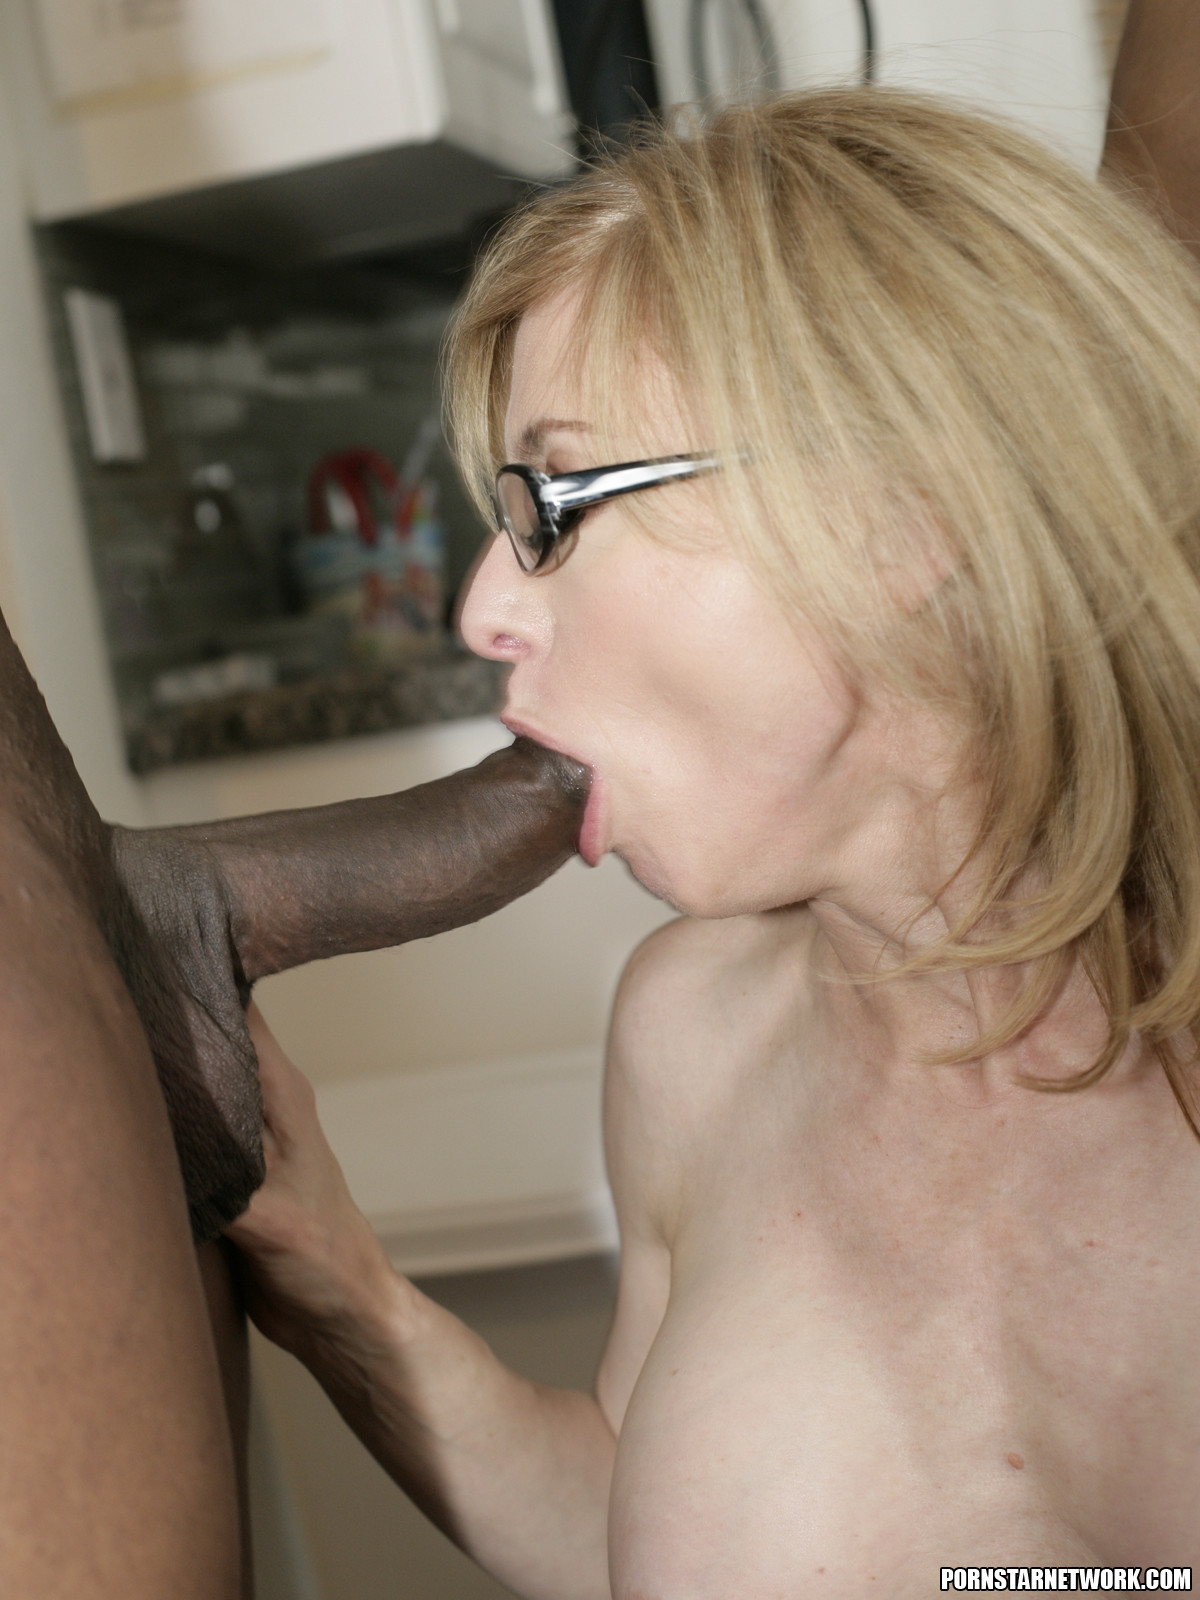 Nina hartley double penetration new sex images